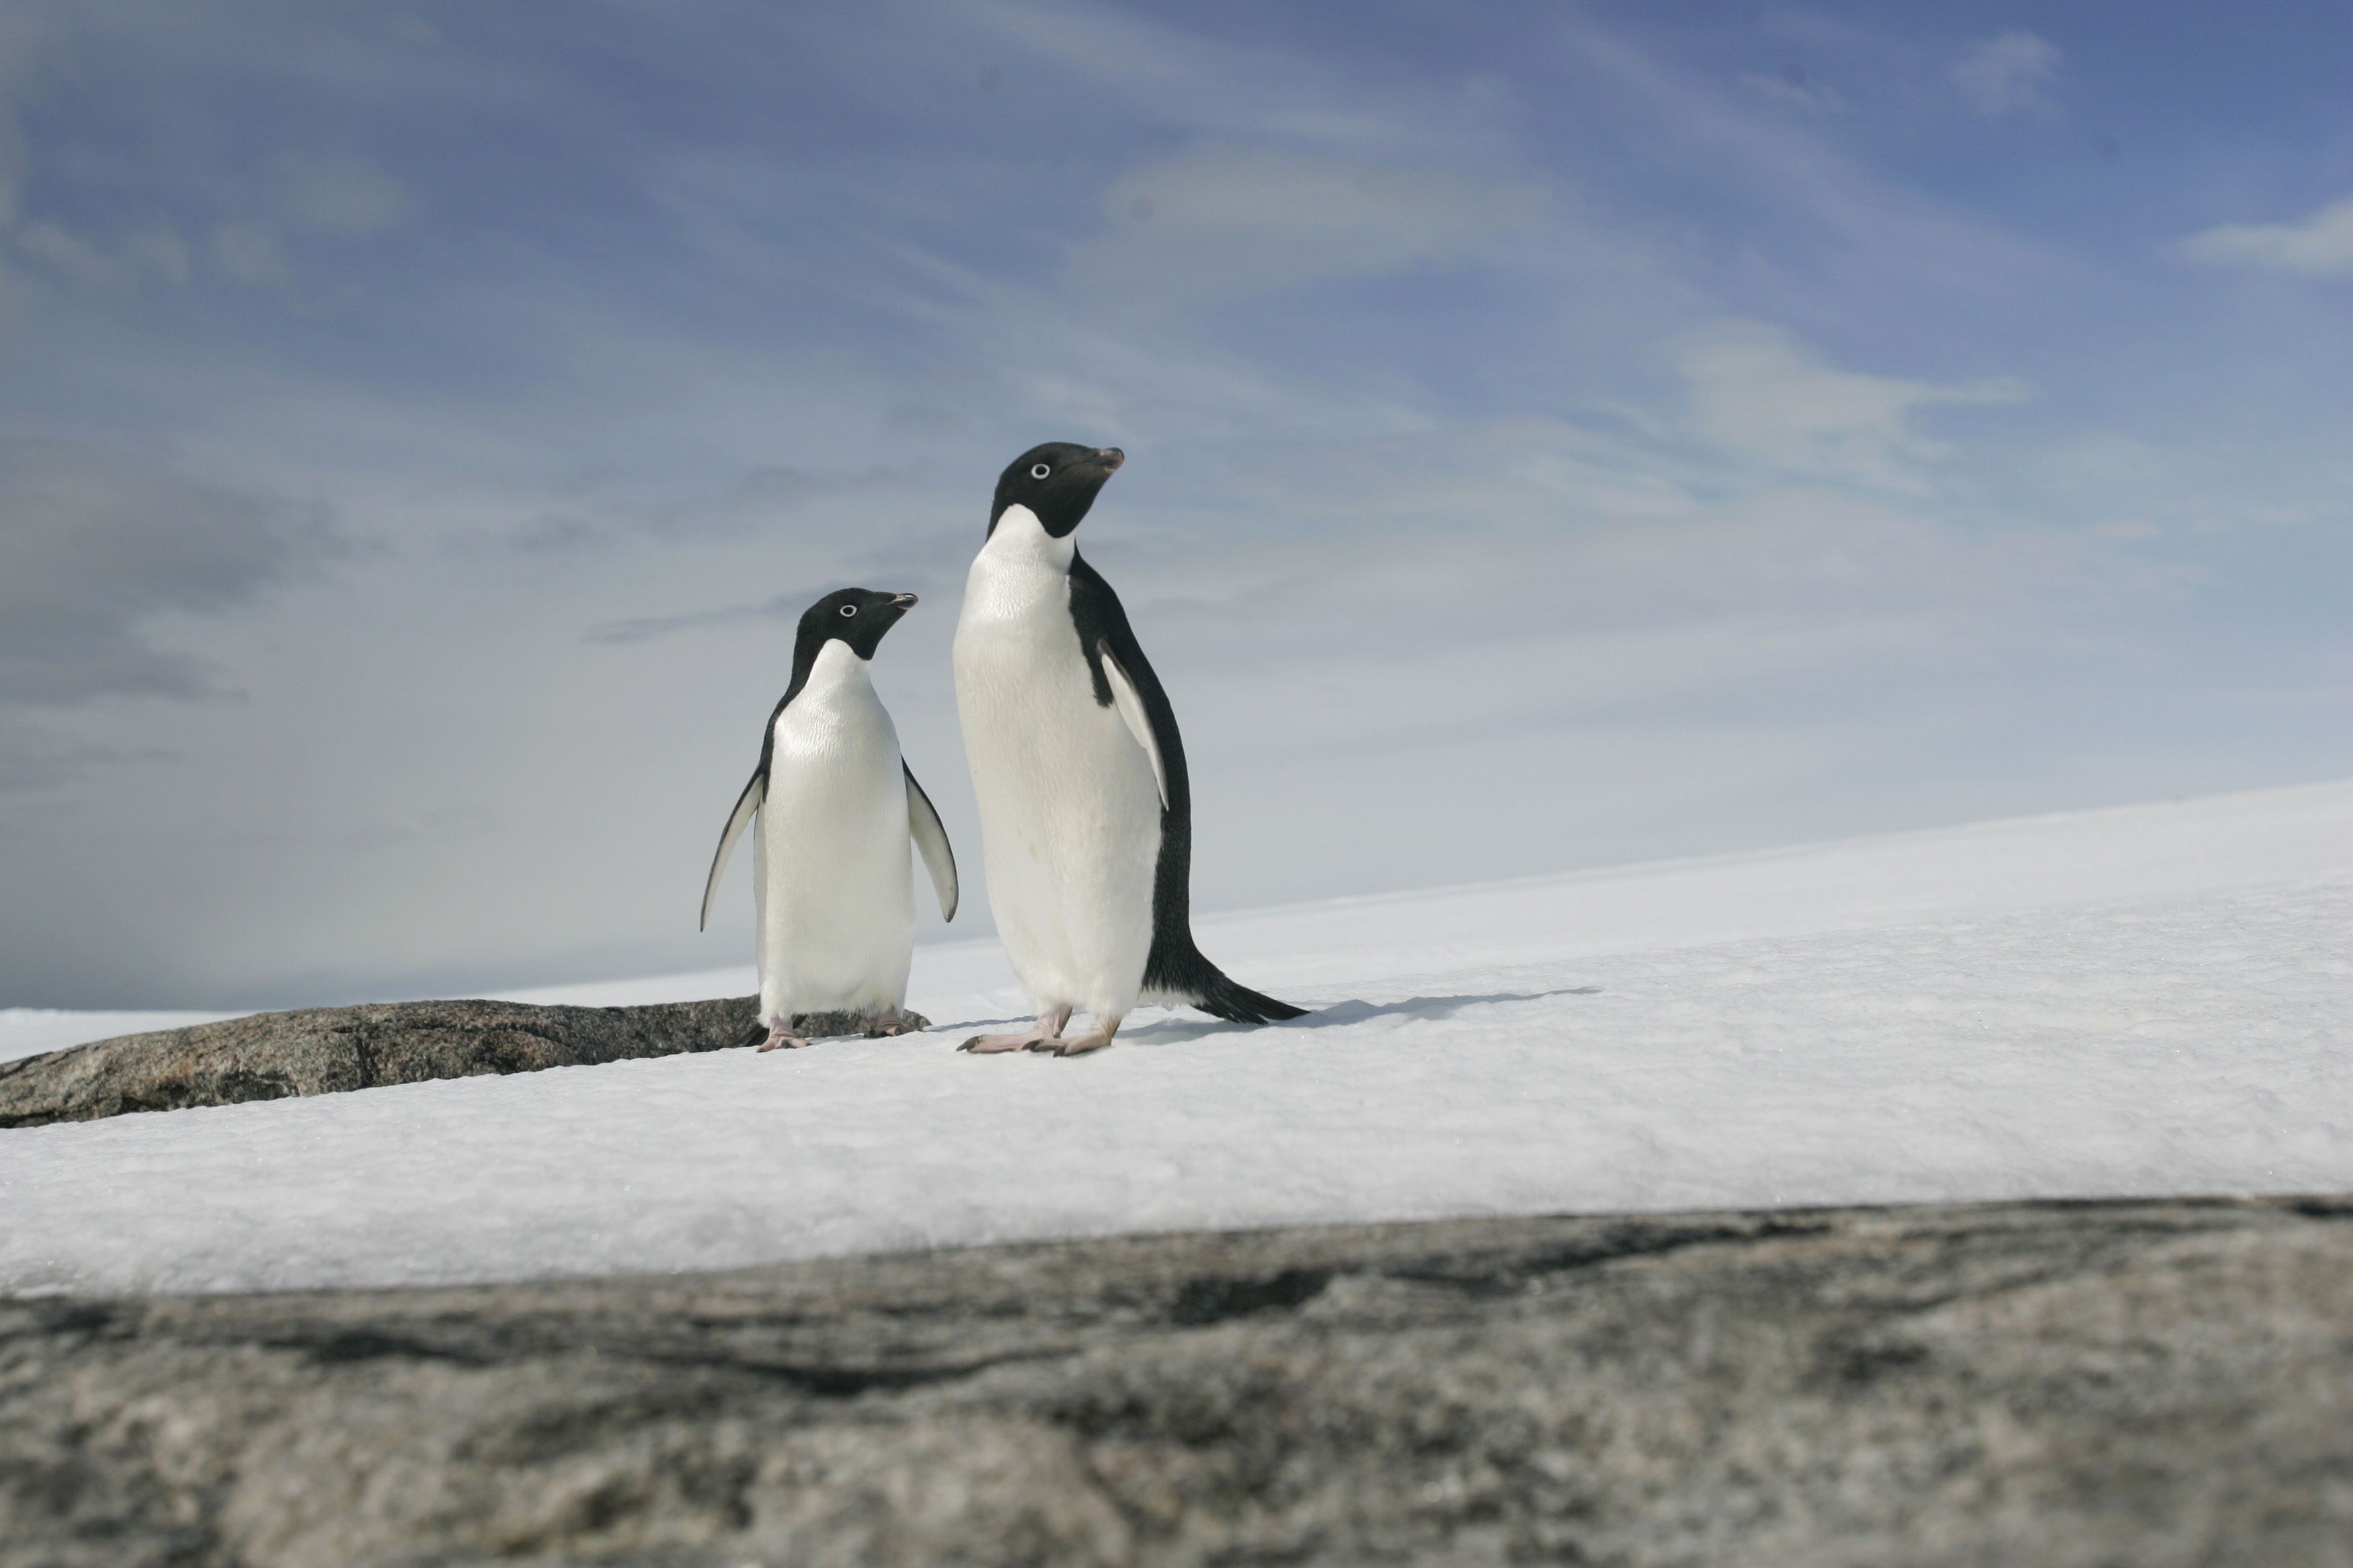 A pair of Adelie penguins are pictured at Cape Denison, Commonwealth Bay, East Antarctica on Dec. 28, 2009.